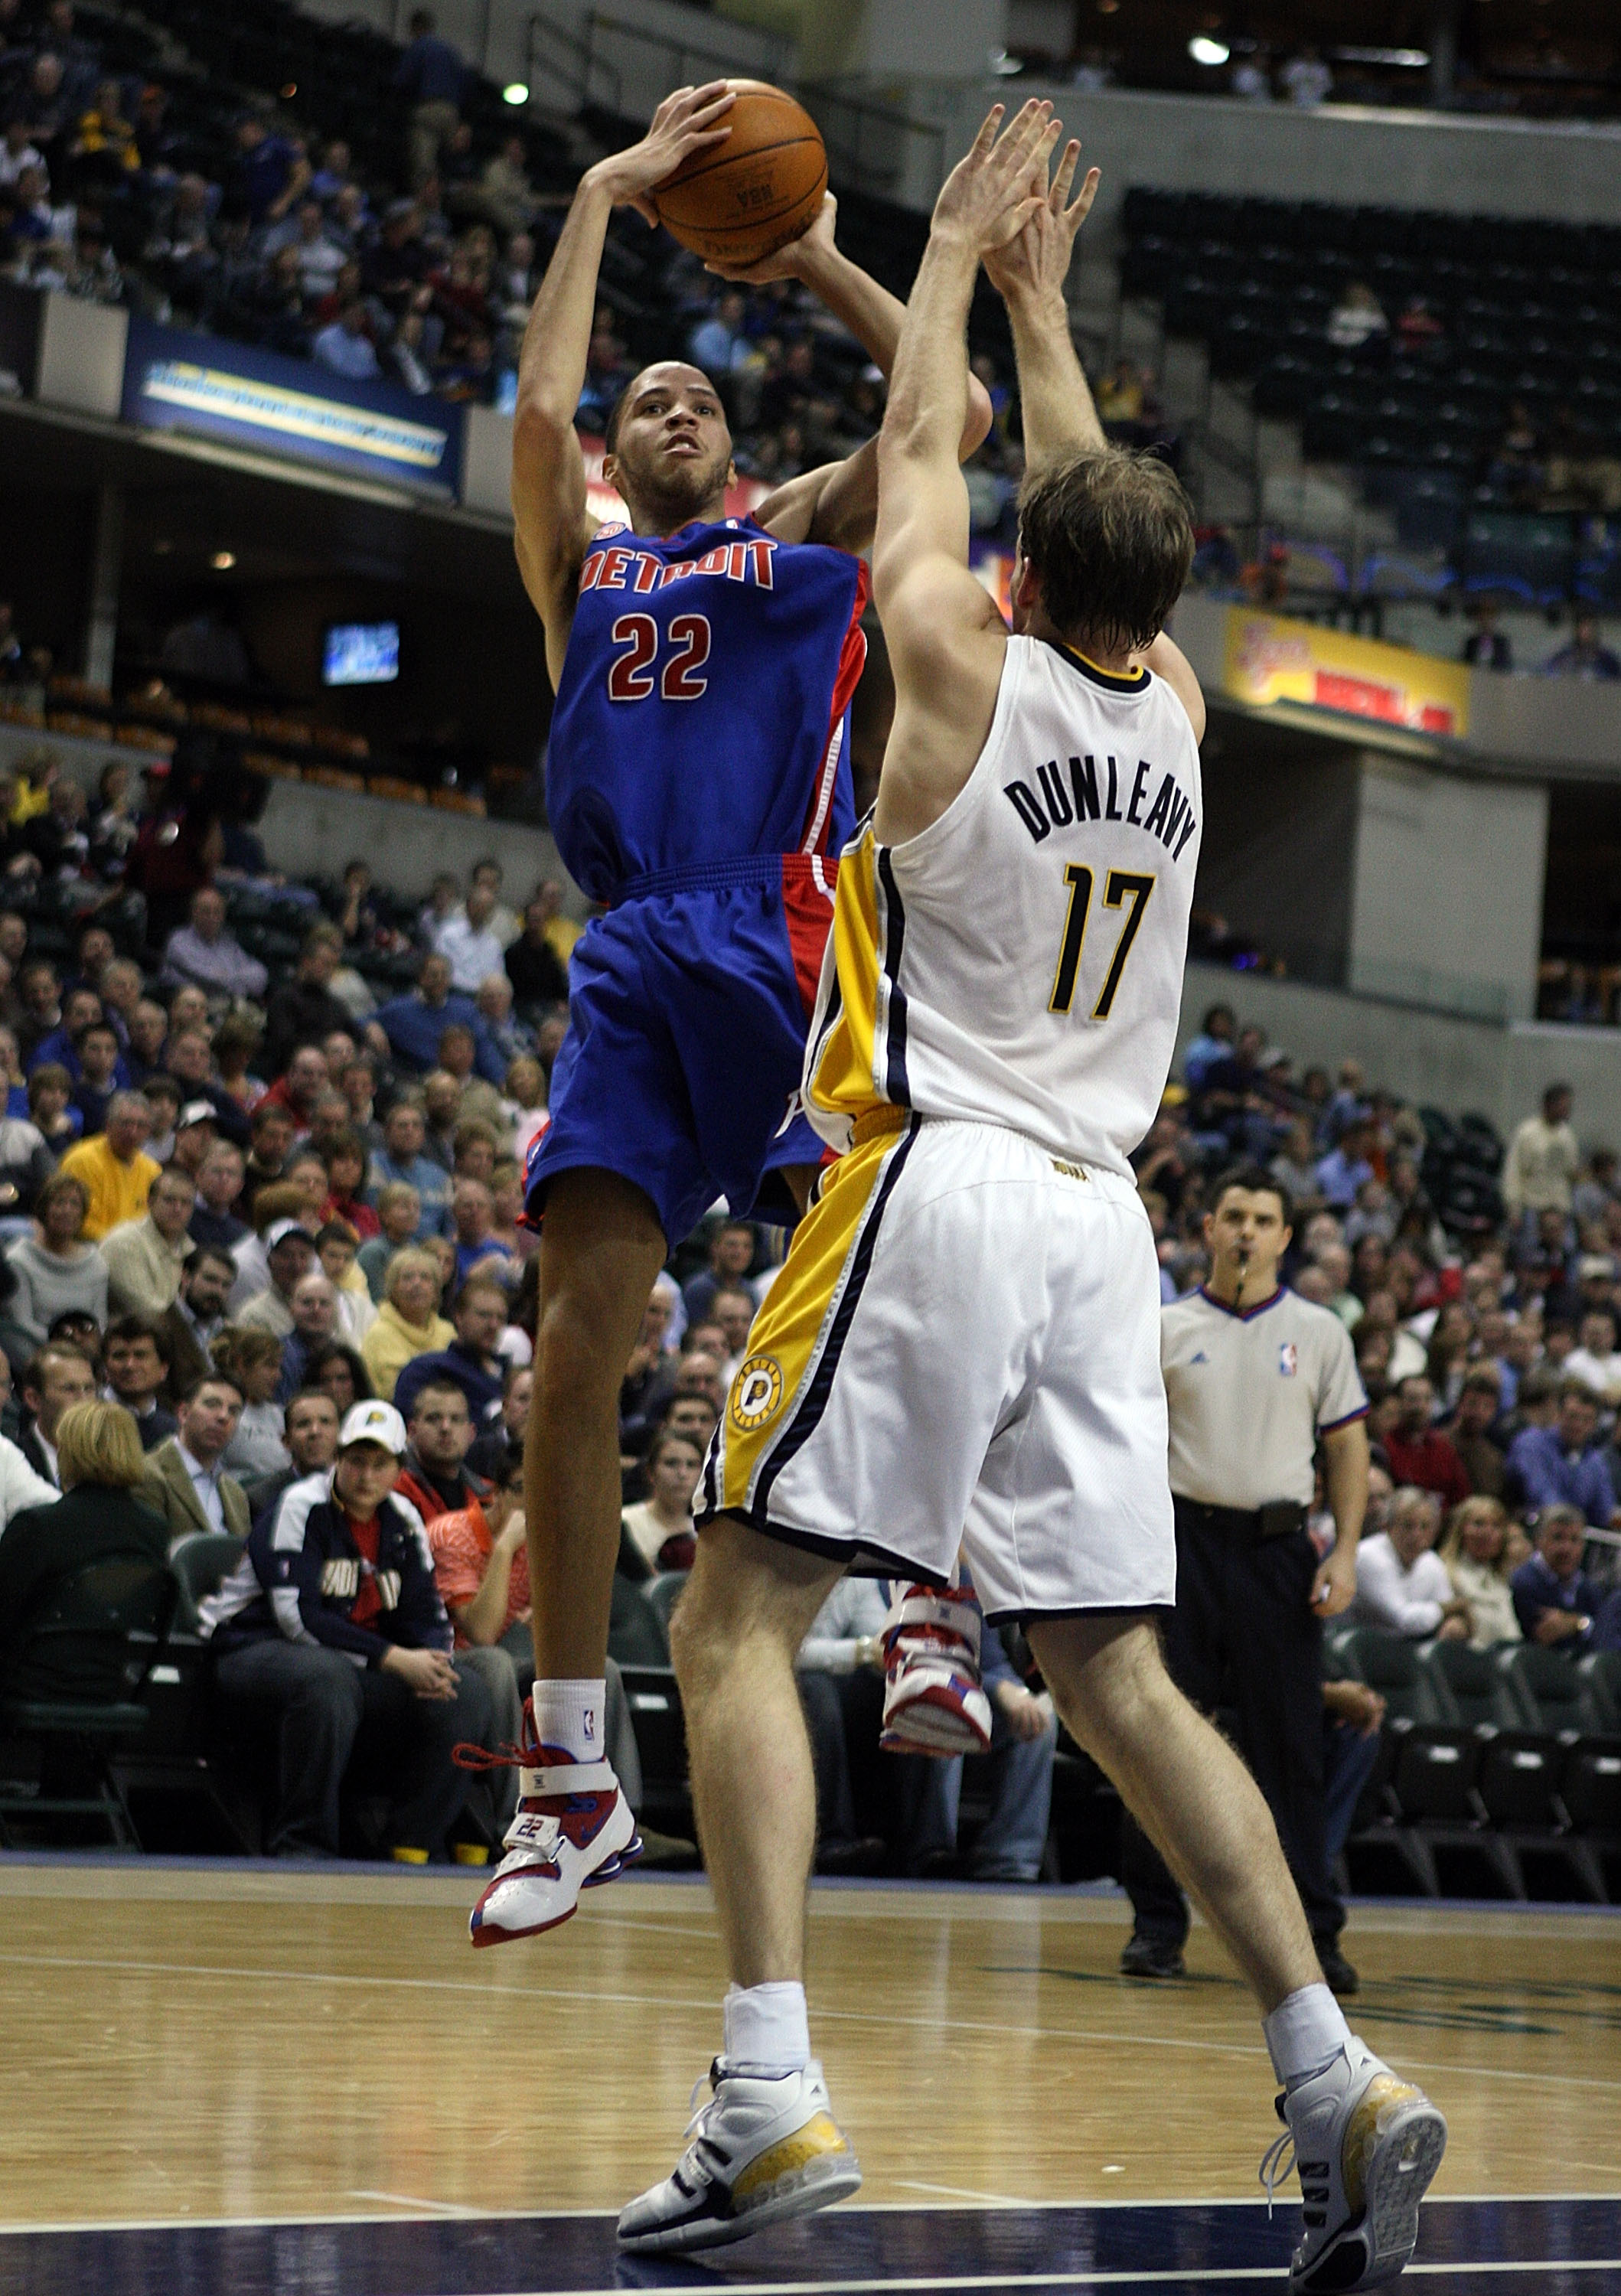 INDIANAPOLIS - JANUARY 29: Tayshaun Prince #22 of the Detroit Pistons shoots the ball over Mike Dunleavy #17 of the Indiana Pacers during the NBA game on January 29, 2008 at Conseco Fieldhouse in Indianapolis, Indiana. NOTE TO USER: User expressly acknowl